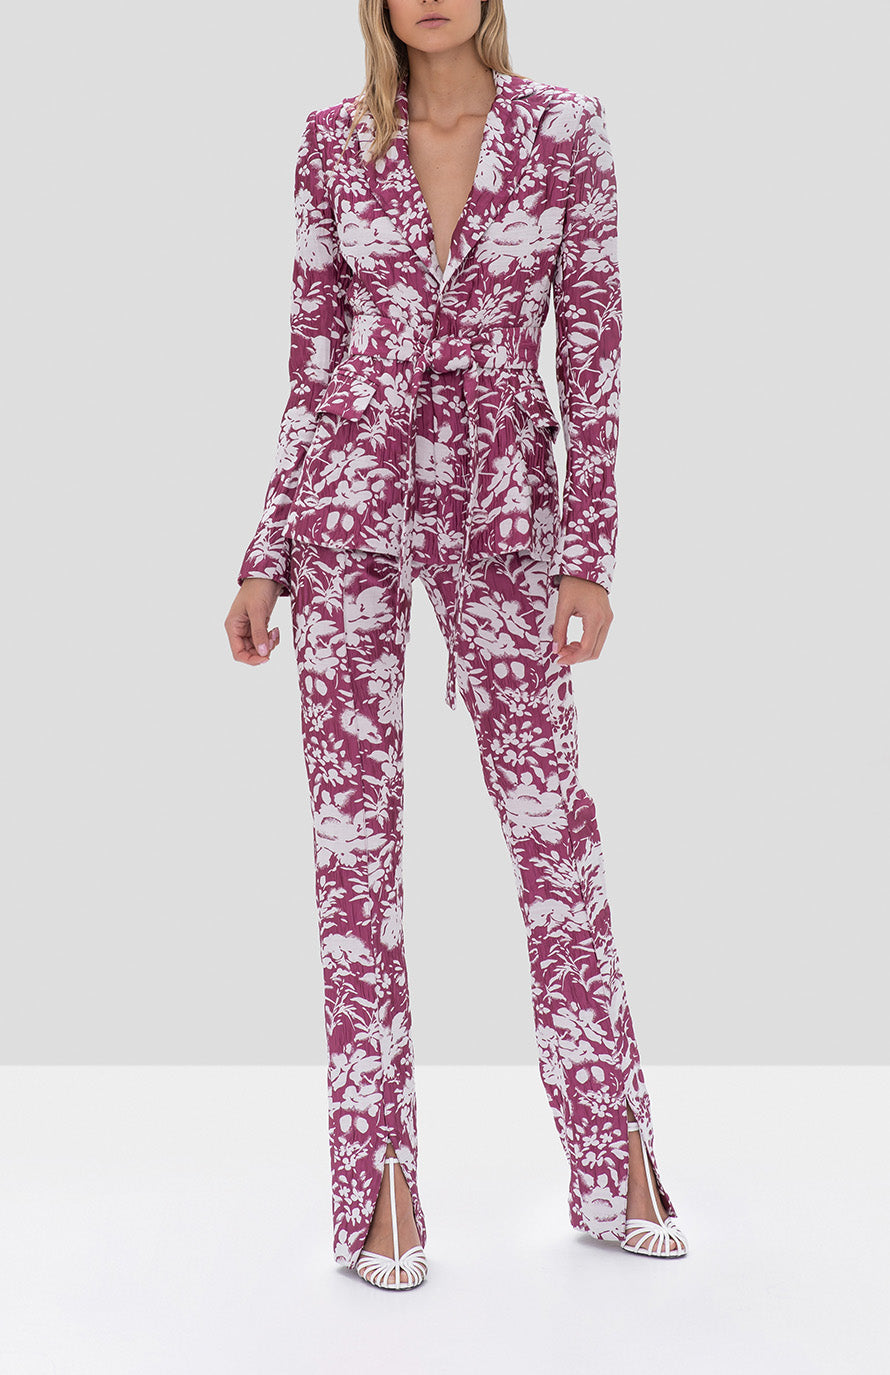 Alexis Raquelle Jacket and Burgos Pant Fuchsia Garden Jacquard from the Fall Winter 2019 Ready To Wear Collection - Rear View